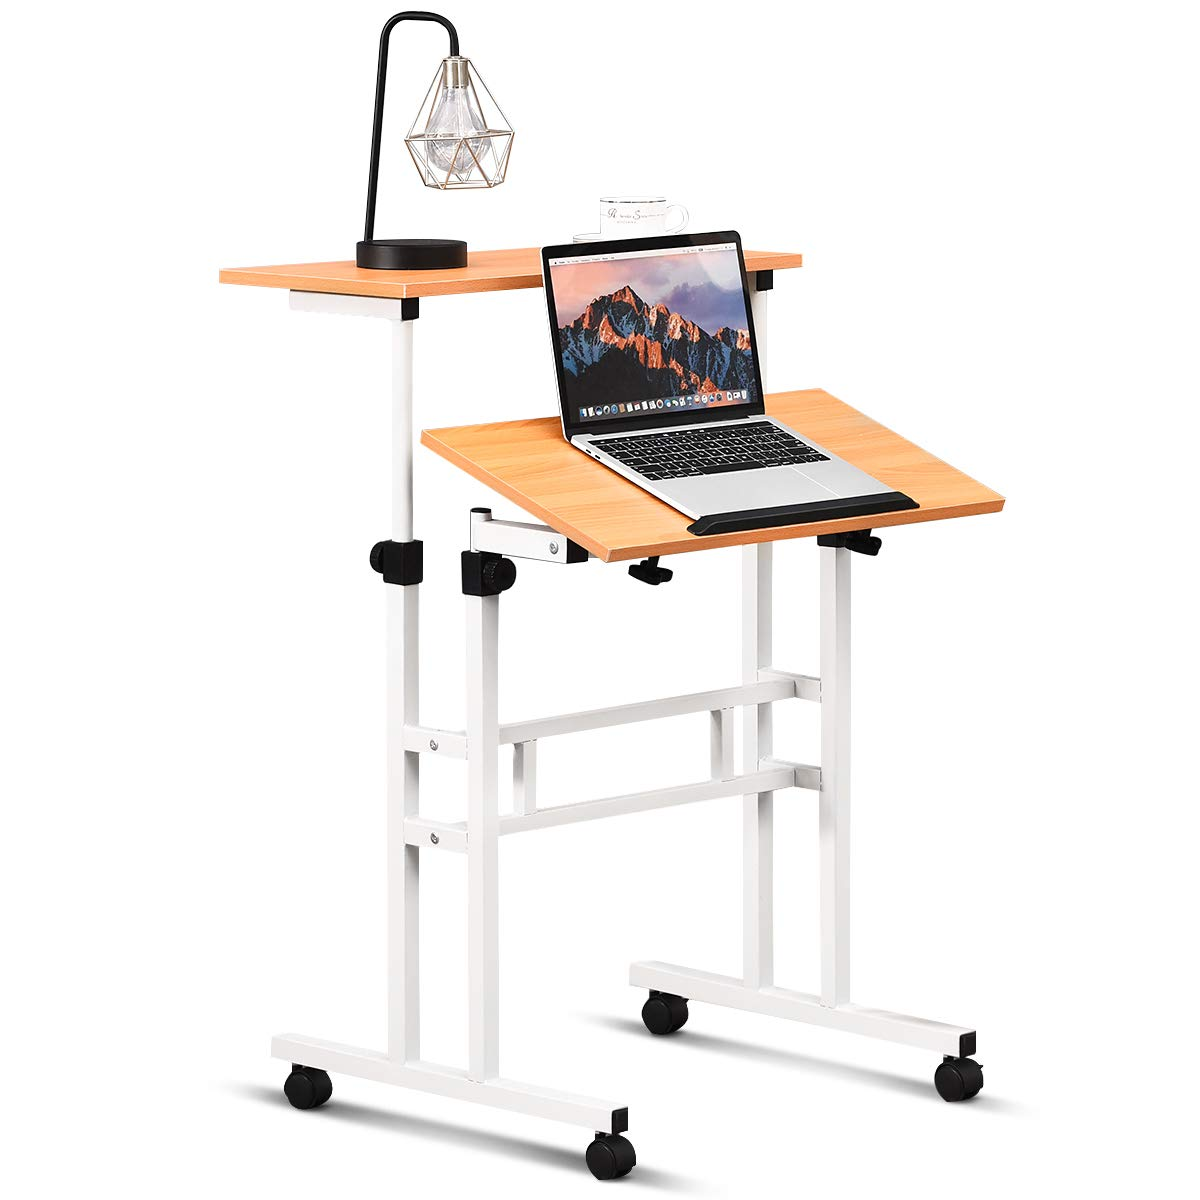 Tangkula Mobile Standing Desk, Height & Angle Adjustable Stand Up Desk Computer Workstation, Movable Computer Desk with Tilting Surface & 4 Rolling Wheels, Suitable for Sitting or Standing, Natural by Tangkula